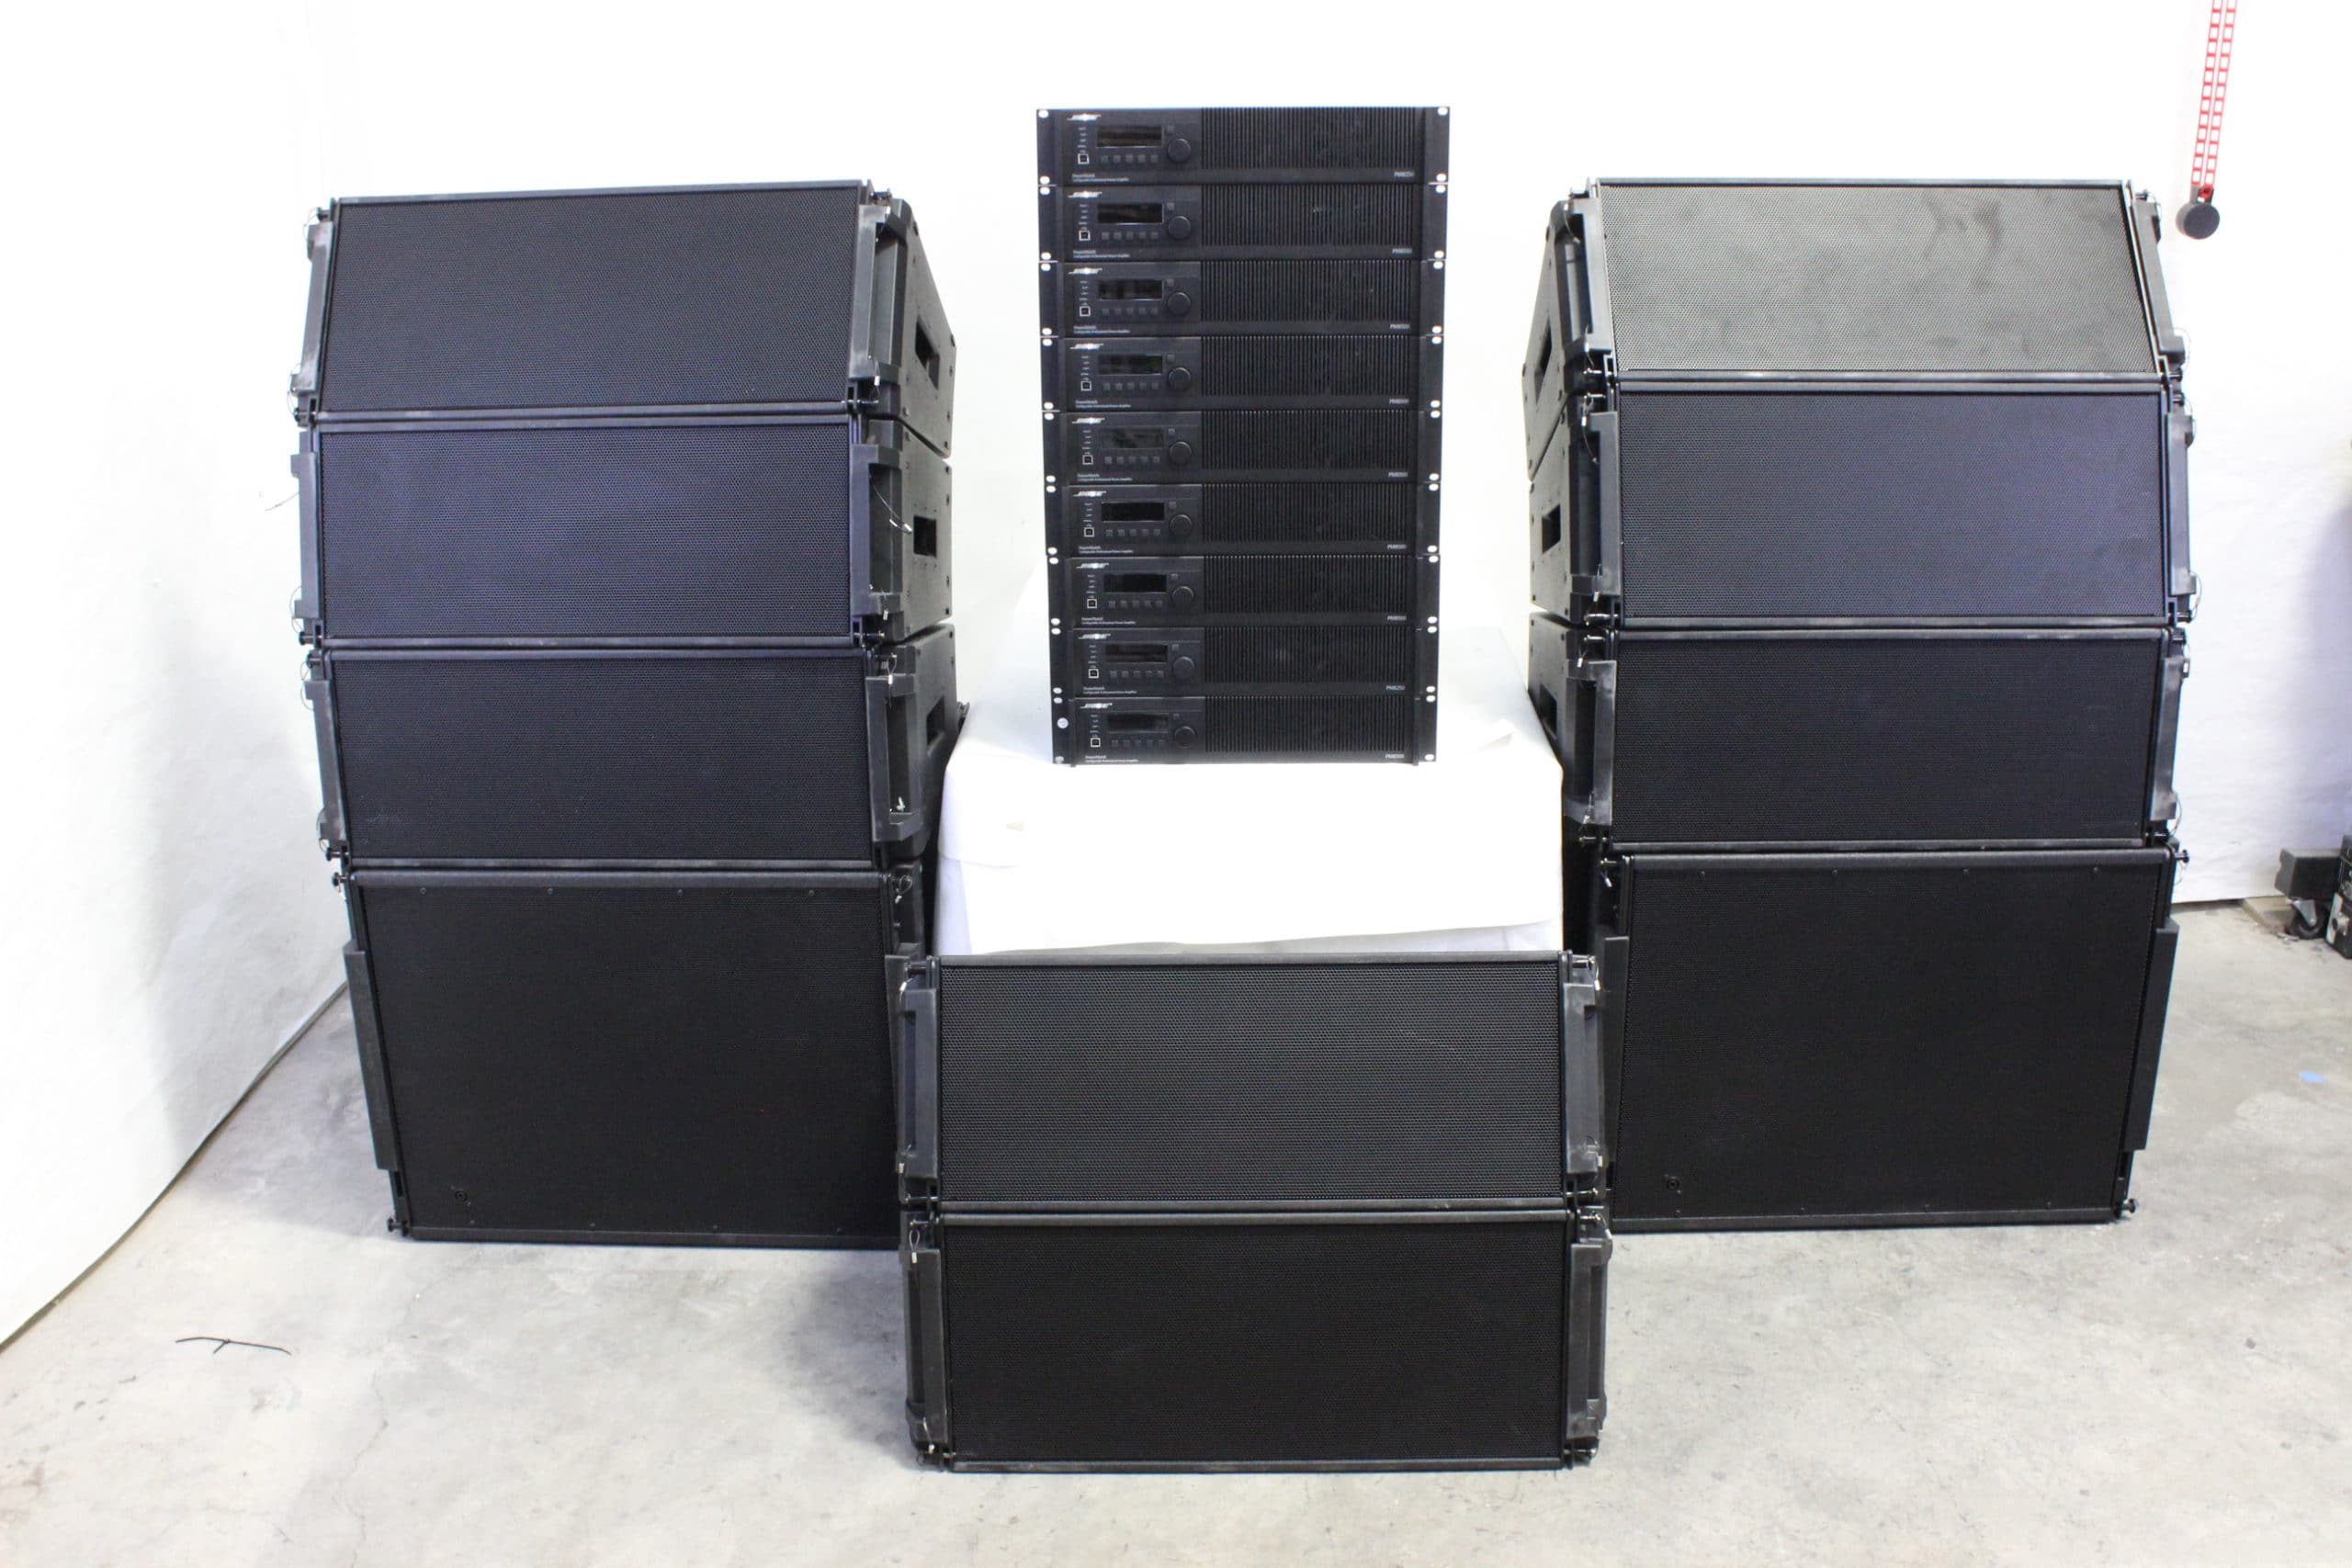 bose-deltaq-showmatch-array-system-w-powermatch-amps-4-sm10-4-sm20-2-sms118-7-pm8500n-2-pm8250n MAIN